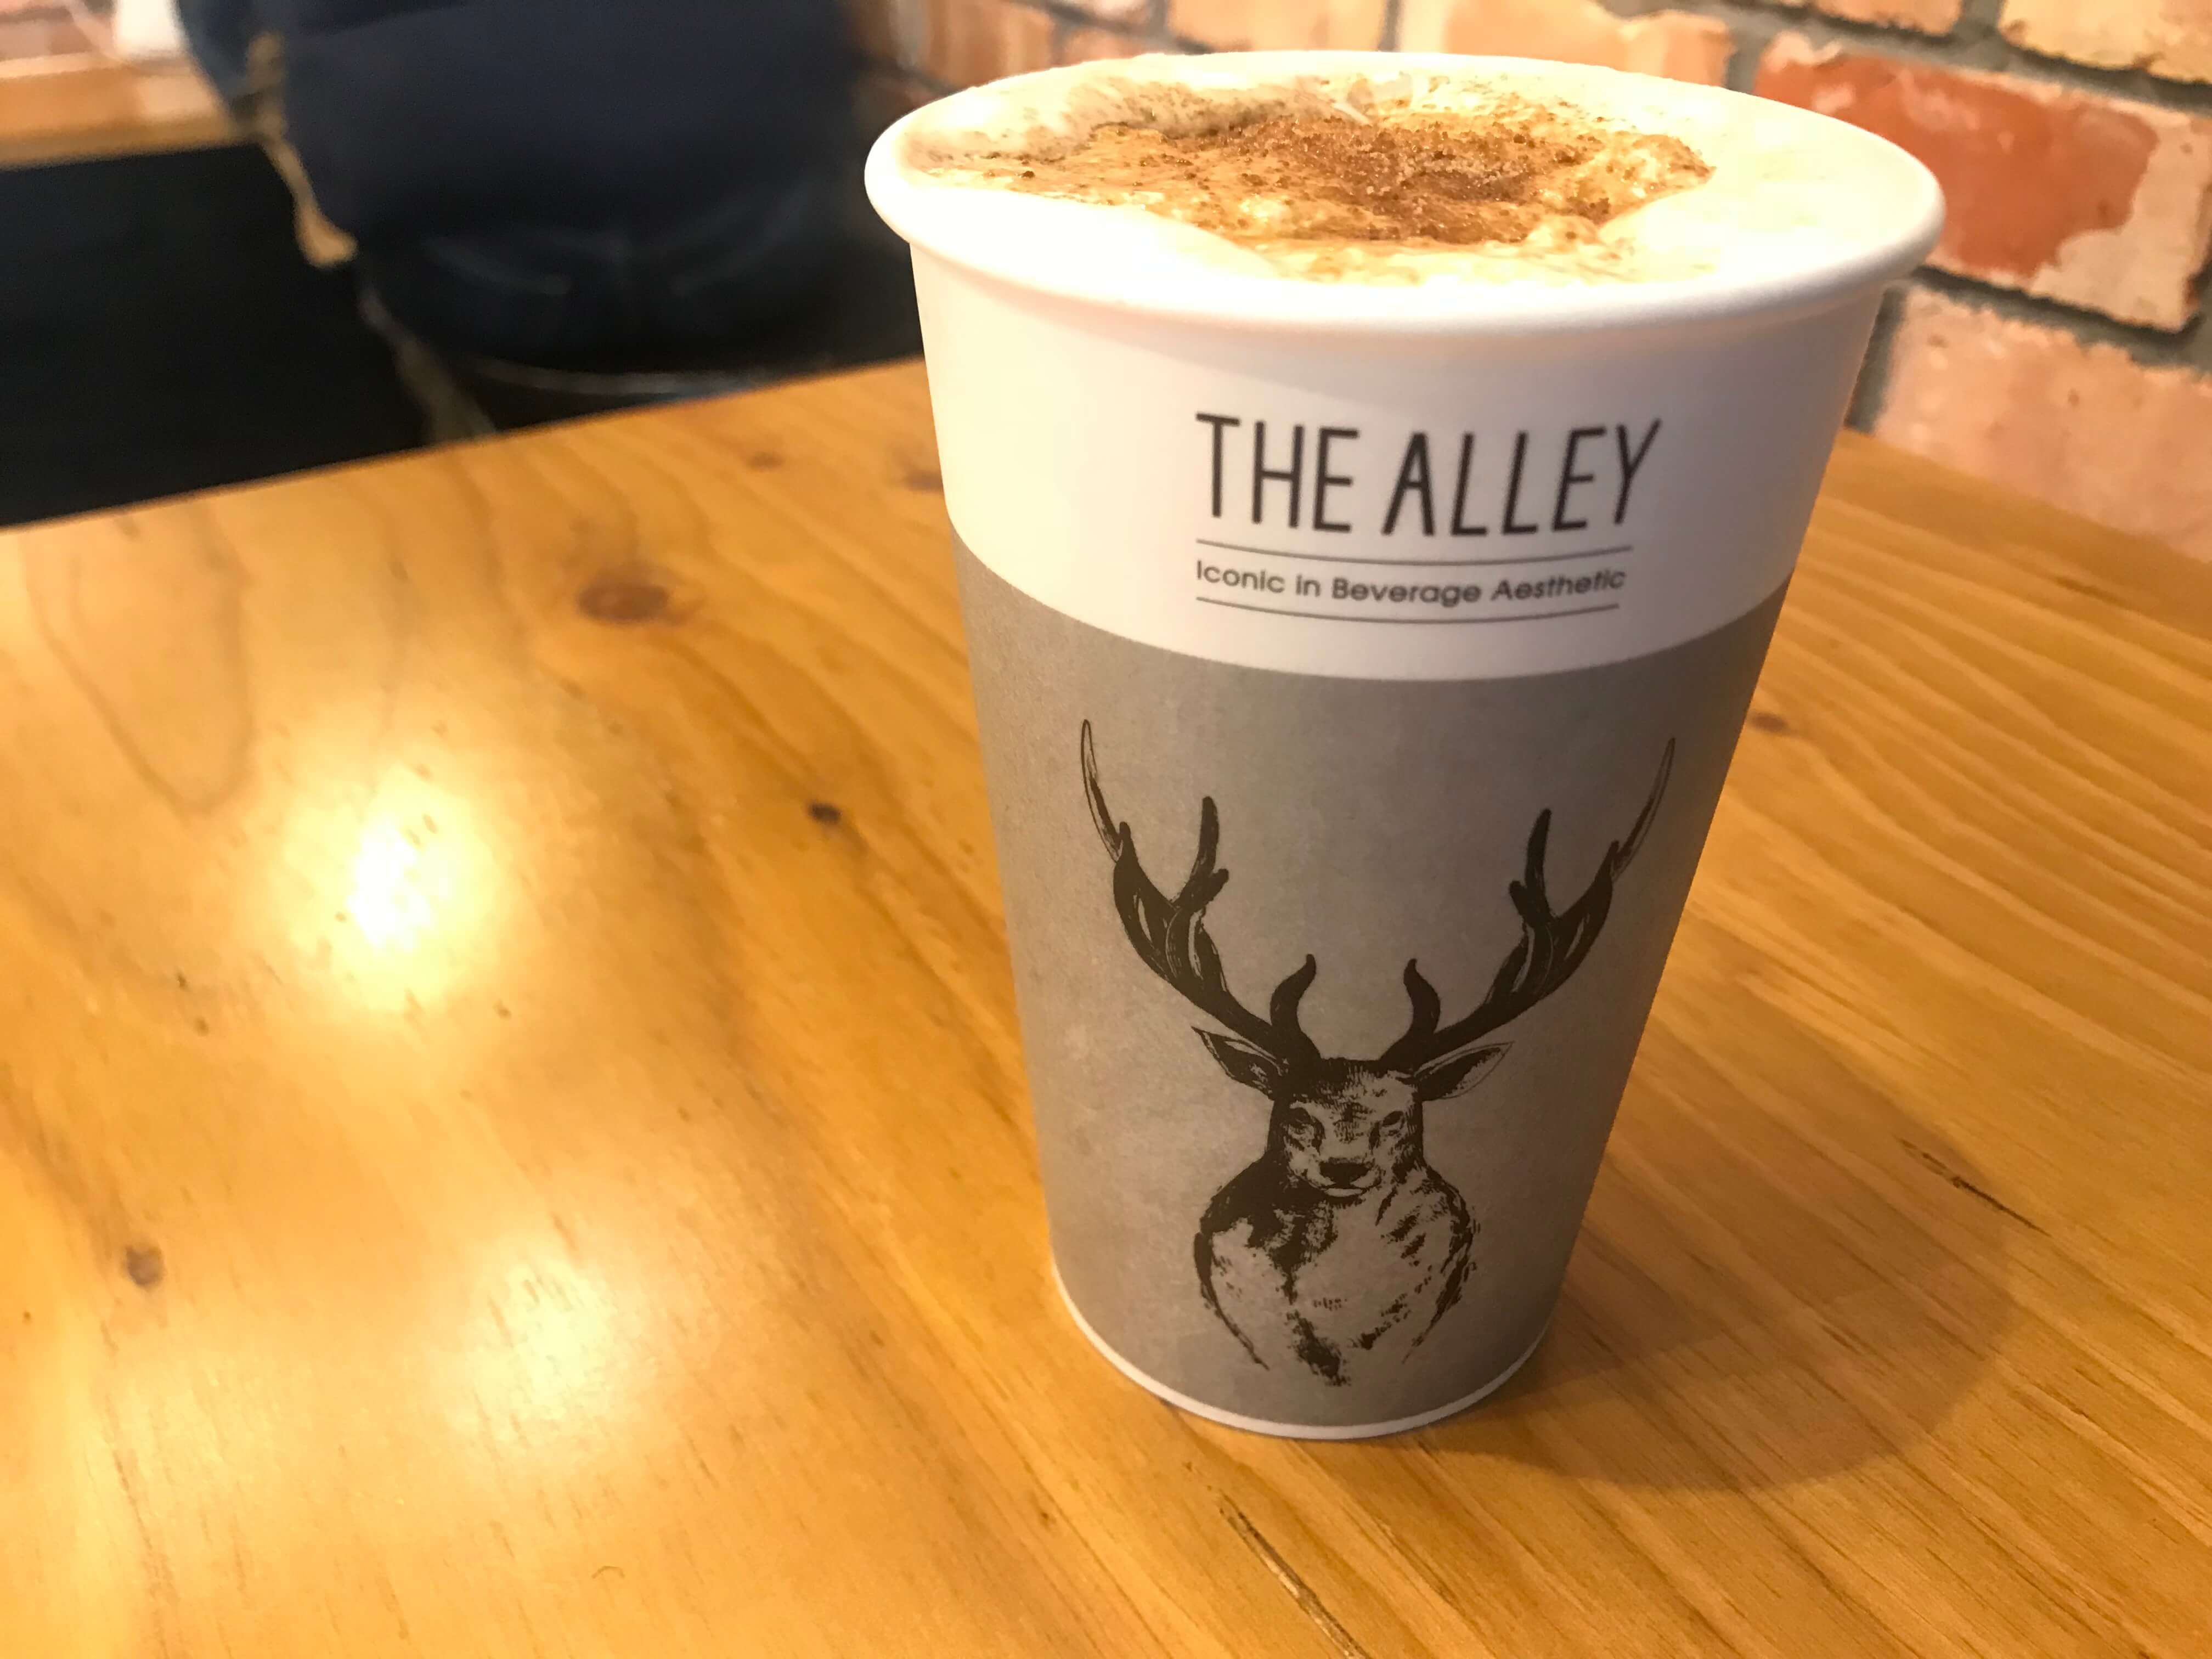 Review: Trying the New Cheese Tea at The Alley in Omotesando